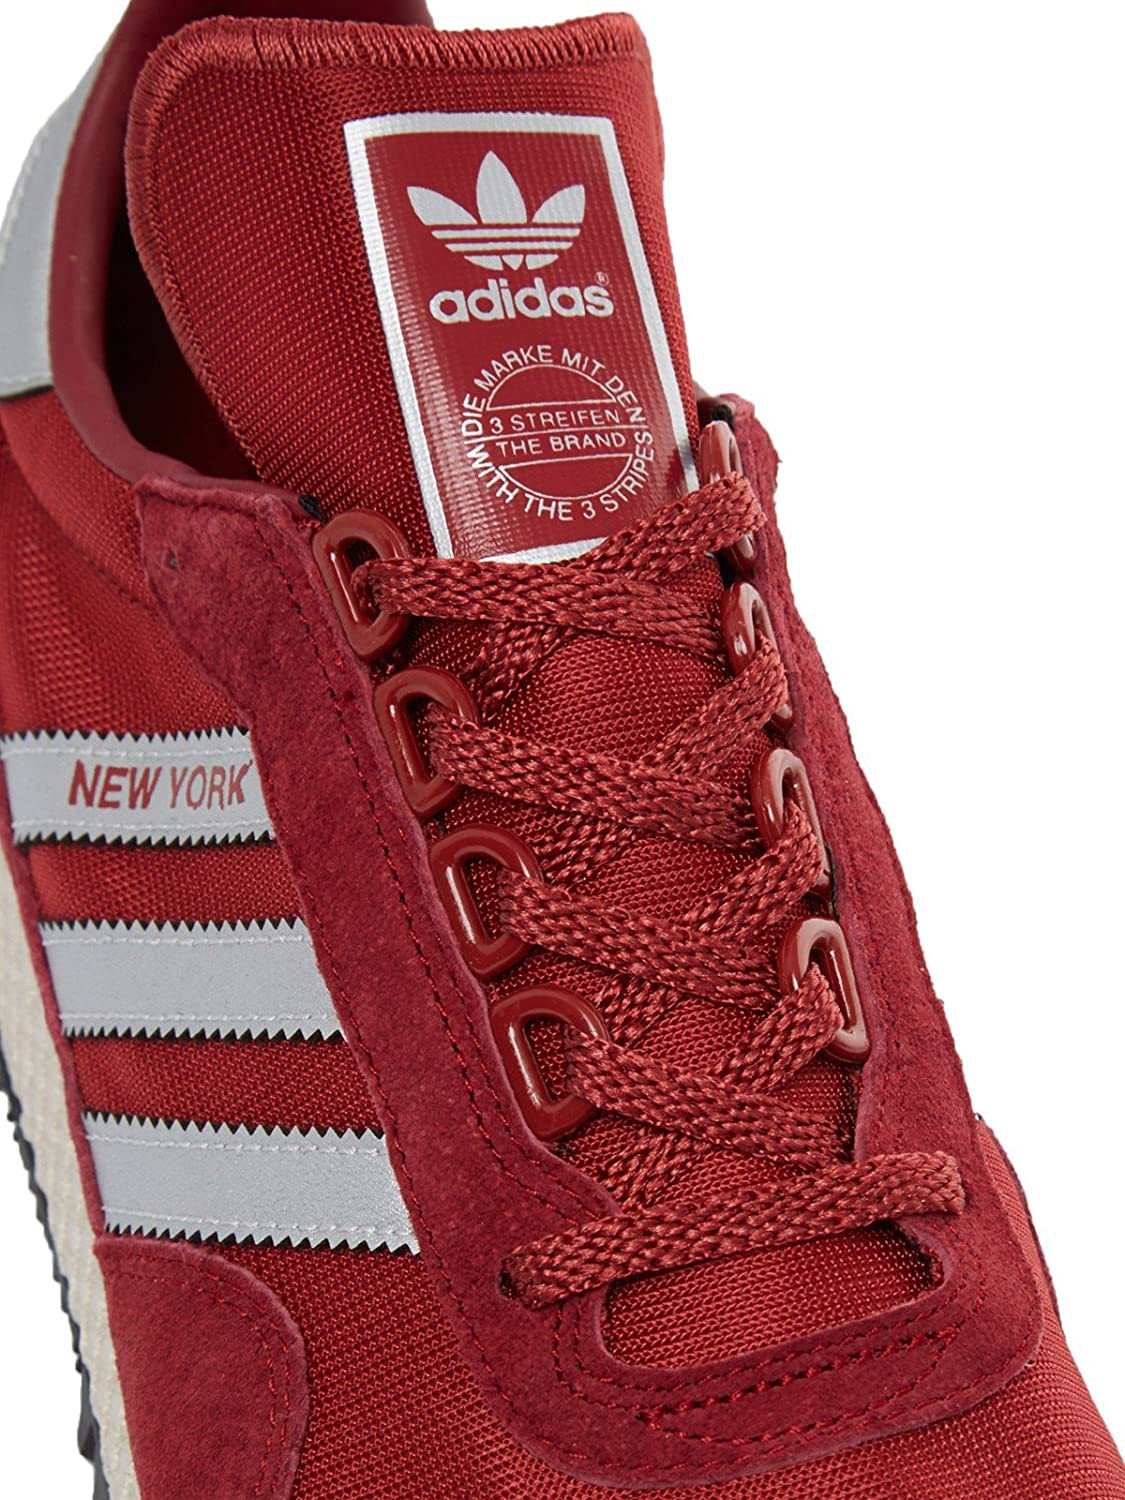 adidas Originals New York, Collegiate Burgundy Matte Silver